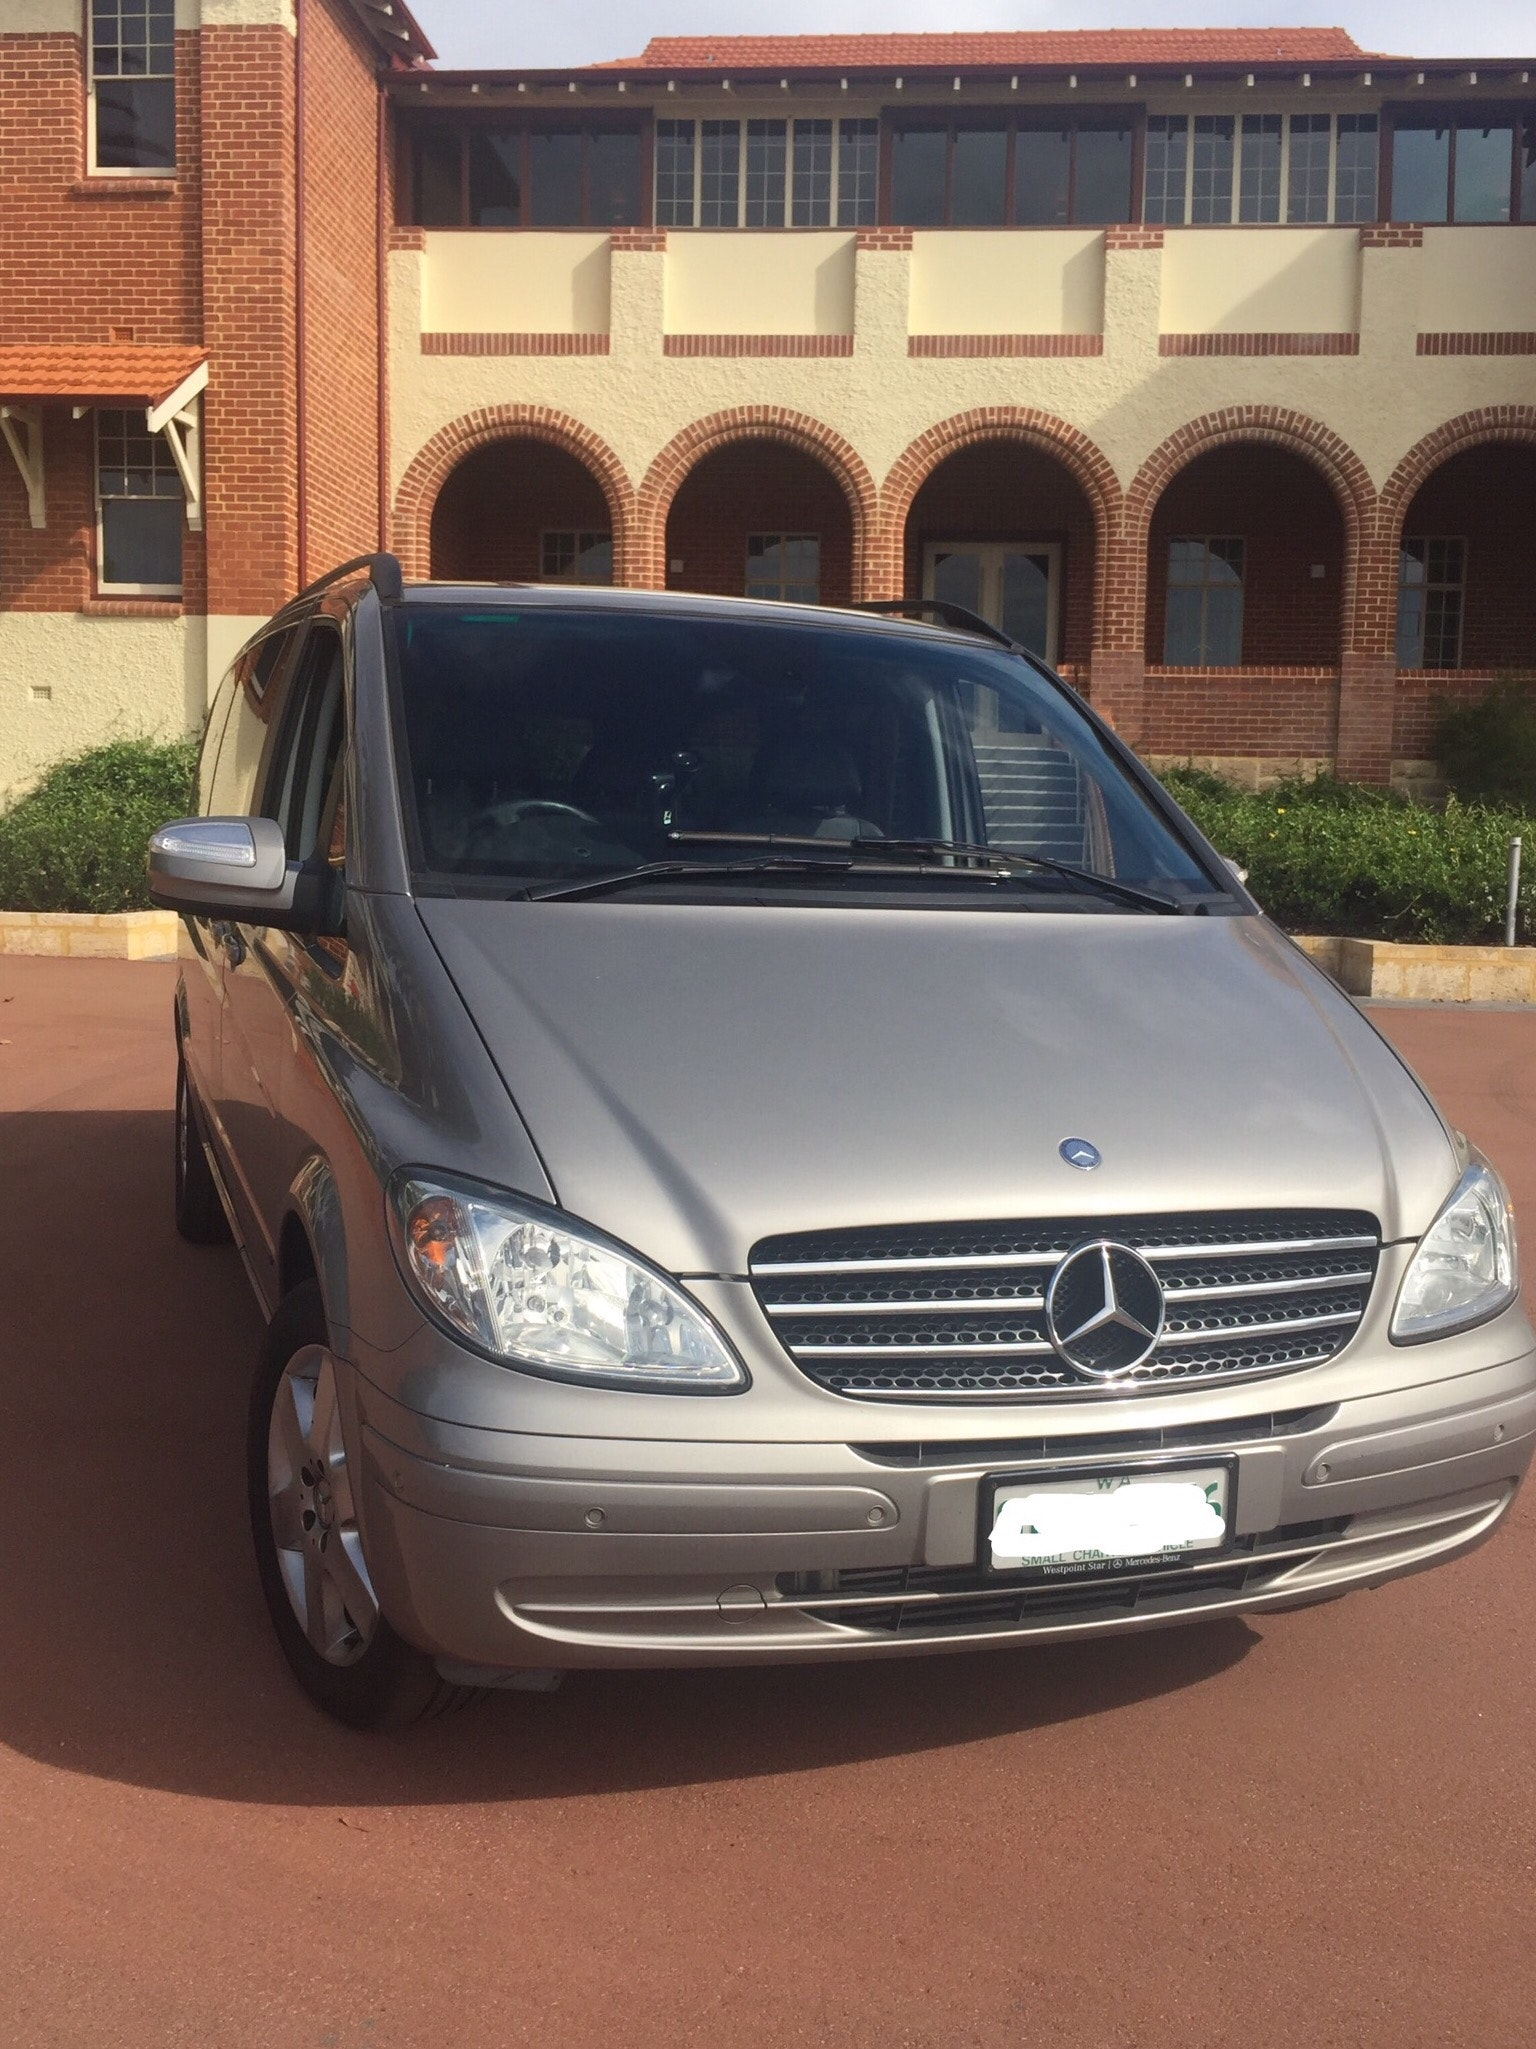 Perth Chauffeur 24/7 service photo